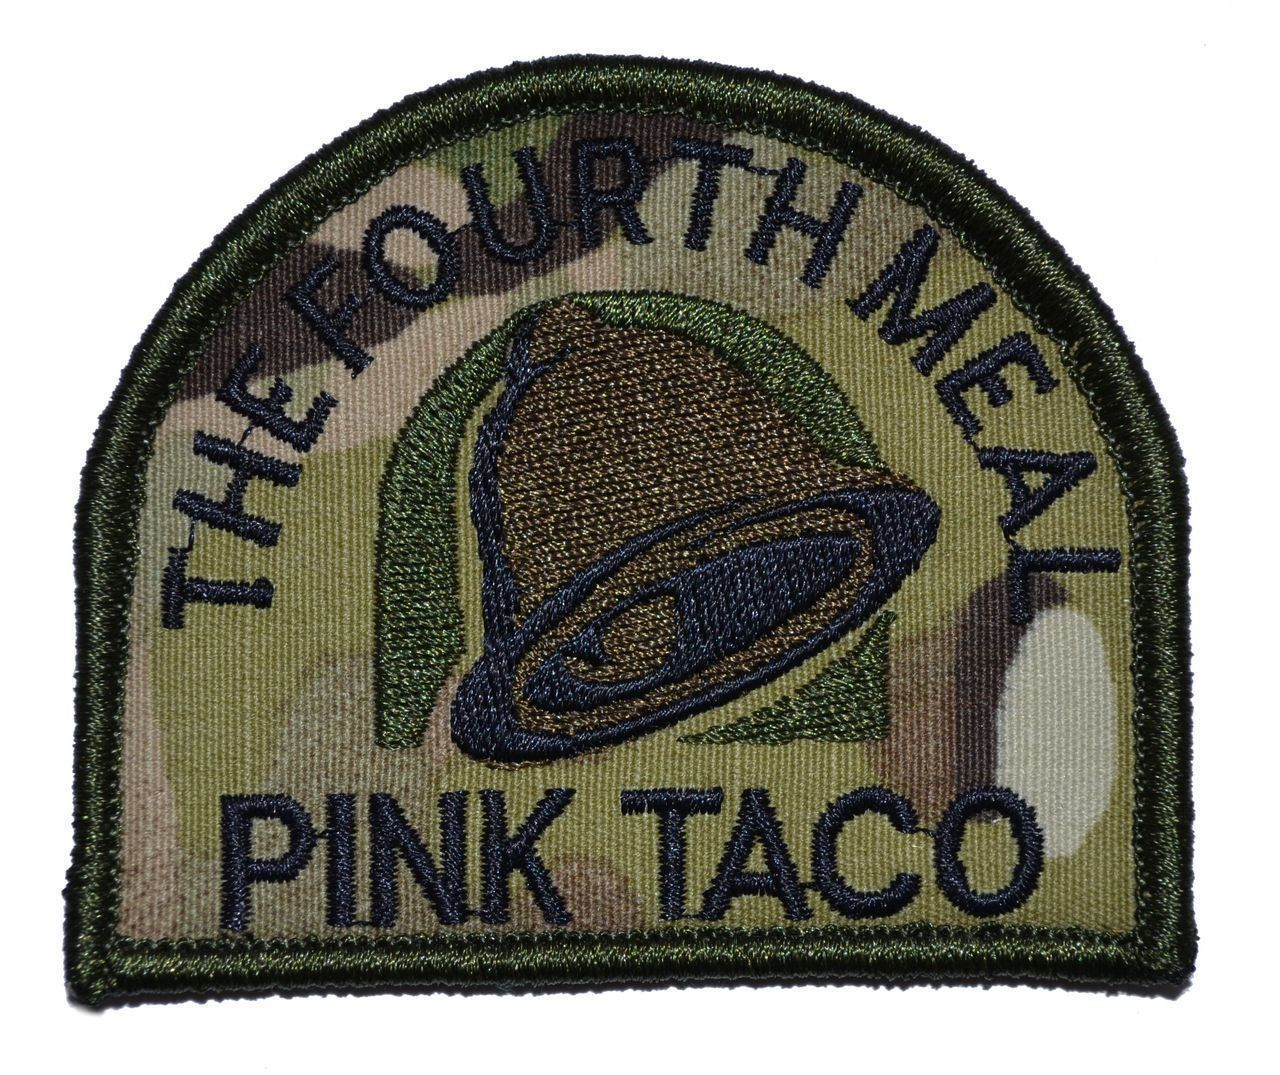 4.99 - Pink Taco   The Fourth Meal - Arc Military Morale Patch Hook  Backing  ebay  Fashion 490e58ccaba